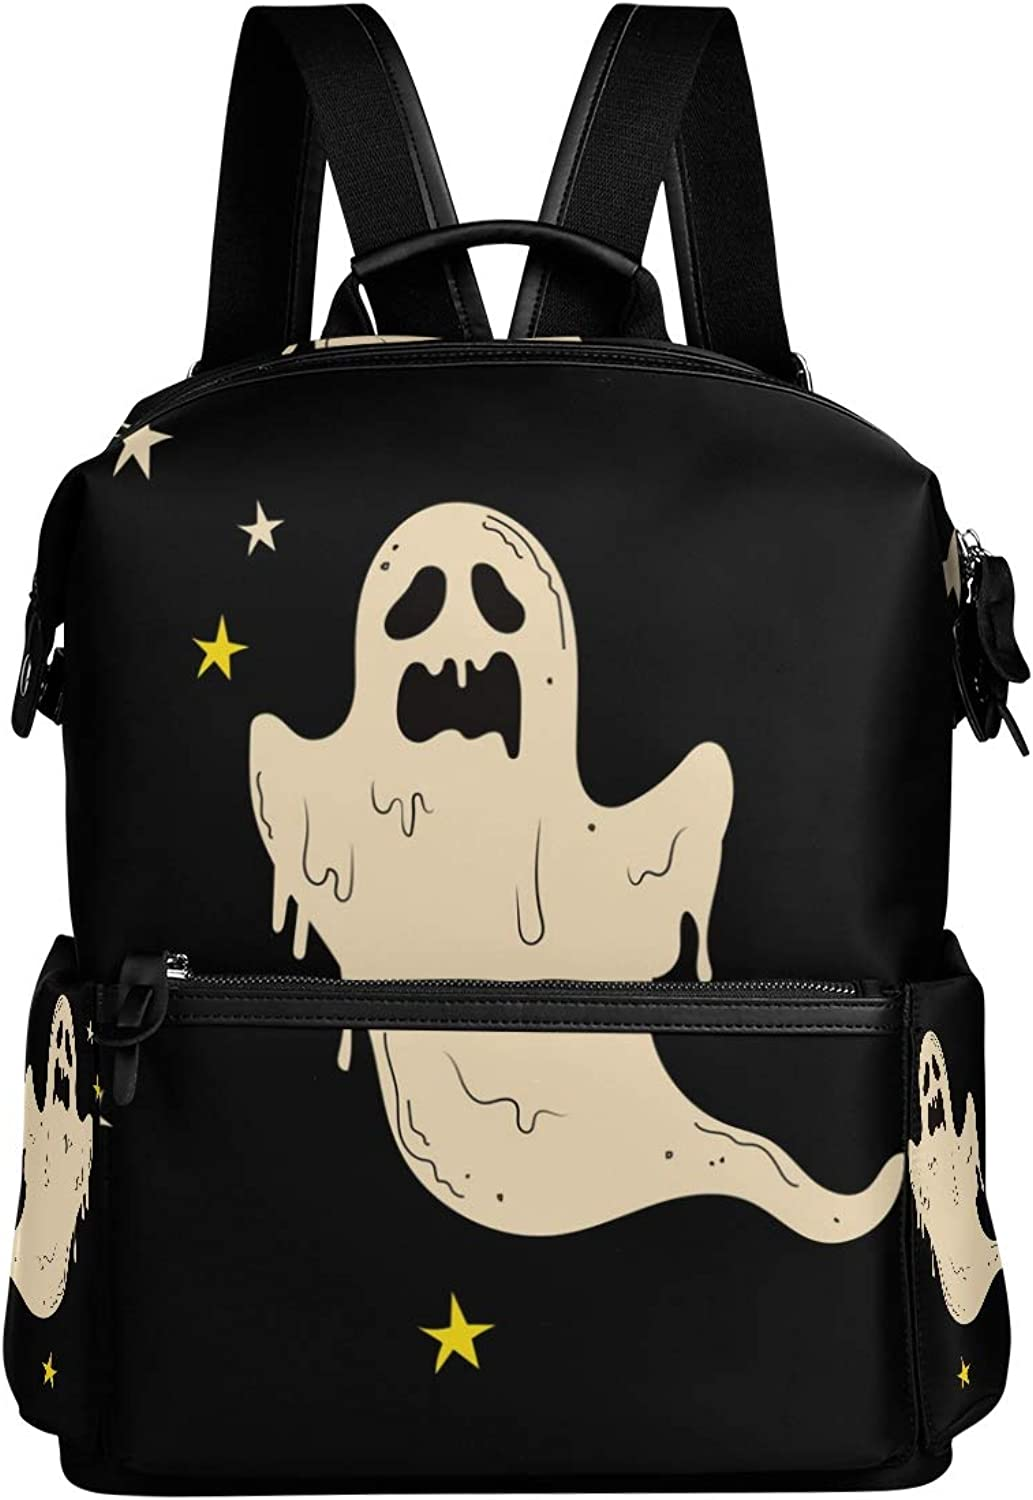 MONTOJ Spooky Halloween Ghost Leather Travel Bag Campus Backpack